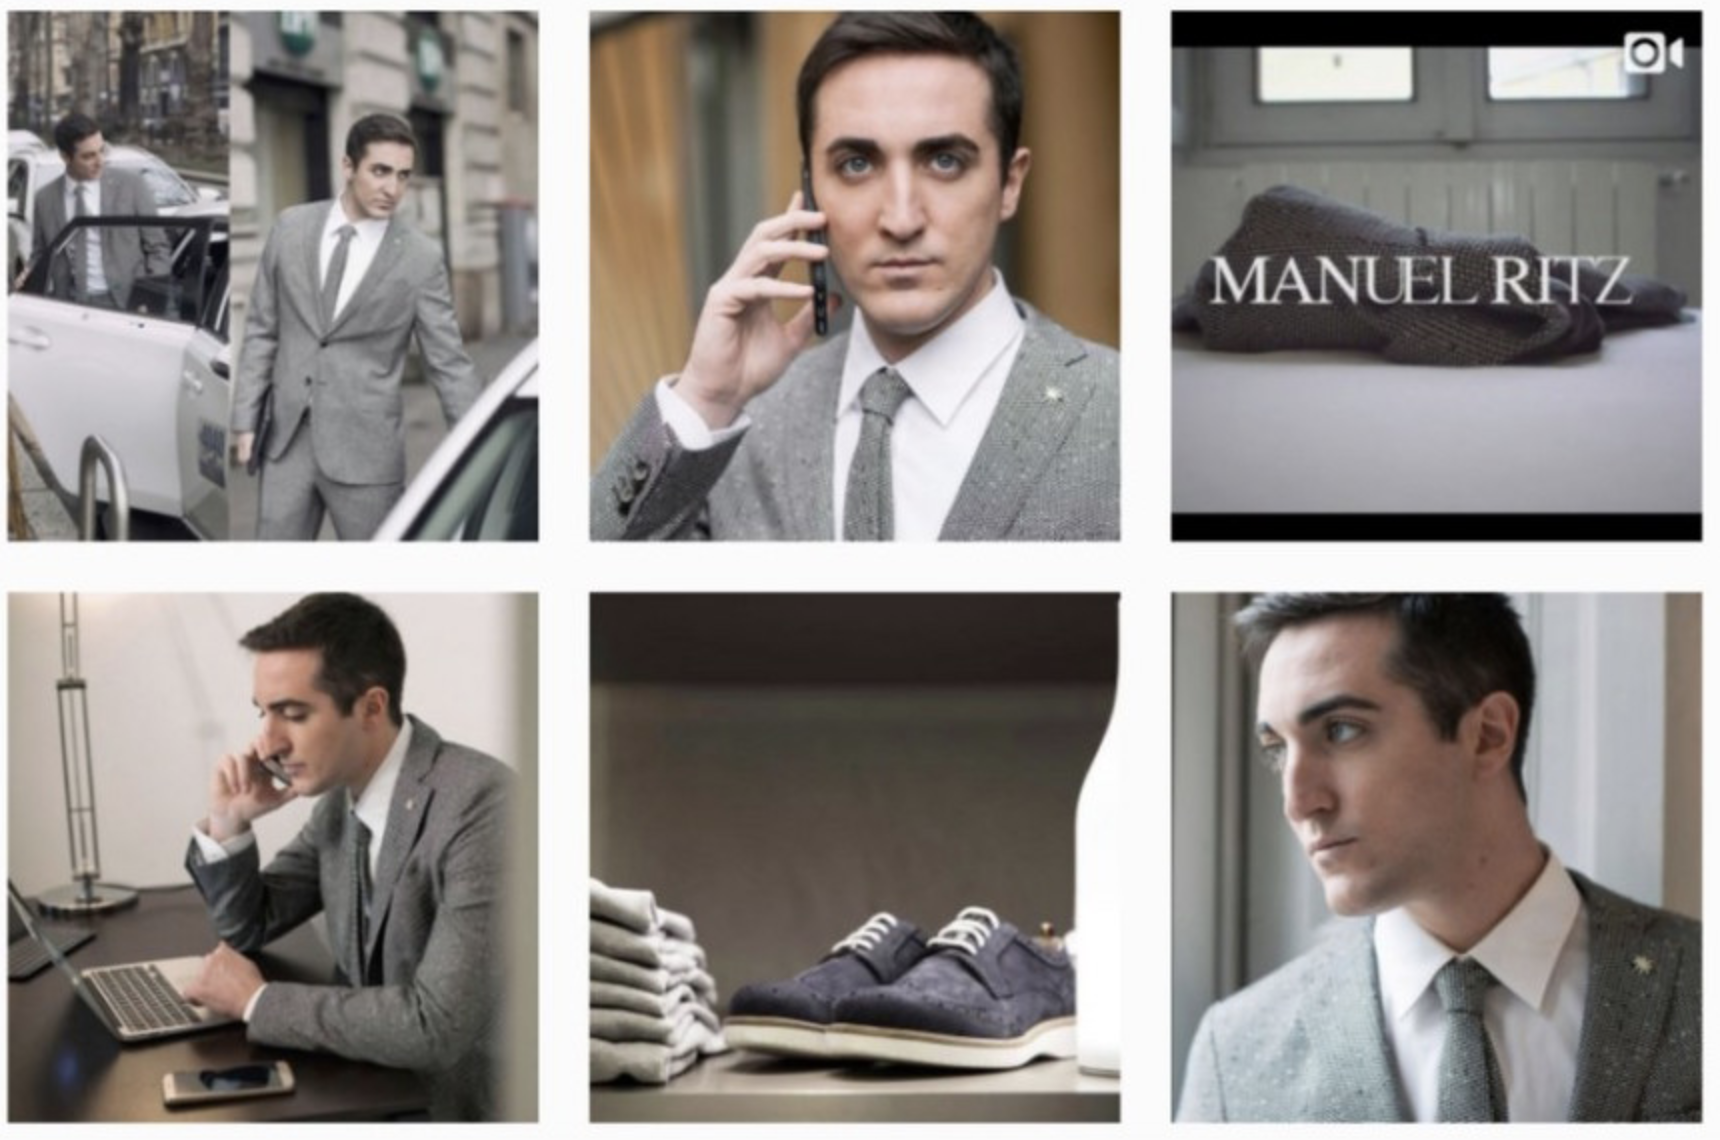 Matteo Achilling joining the Manuel Ritz campaign